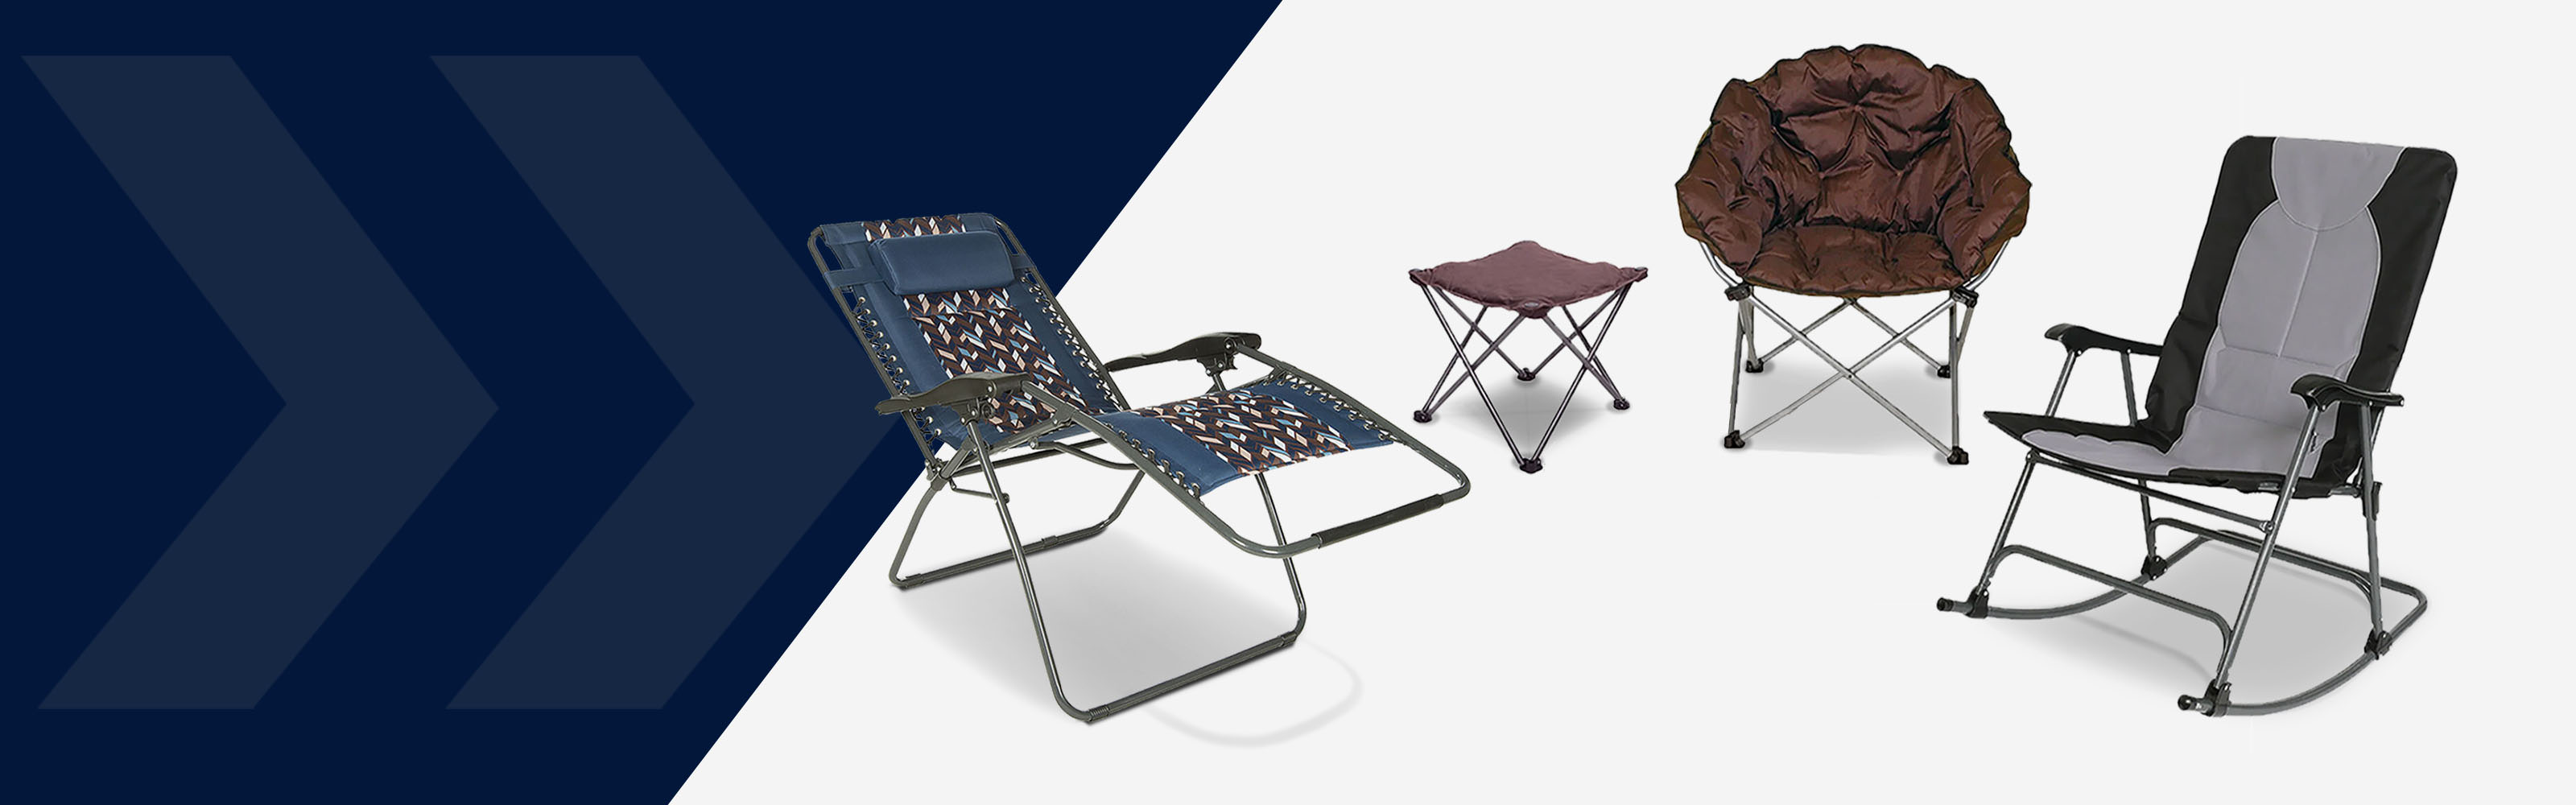 Shop up to 25% off Outdoor Chairs, Rockers & Recliners